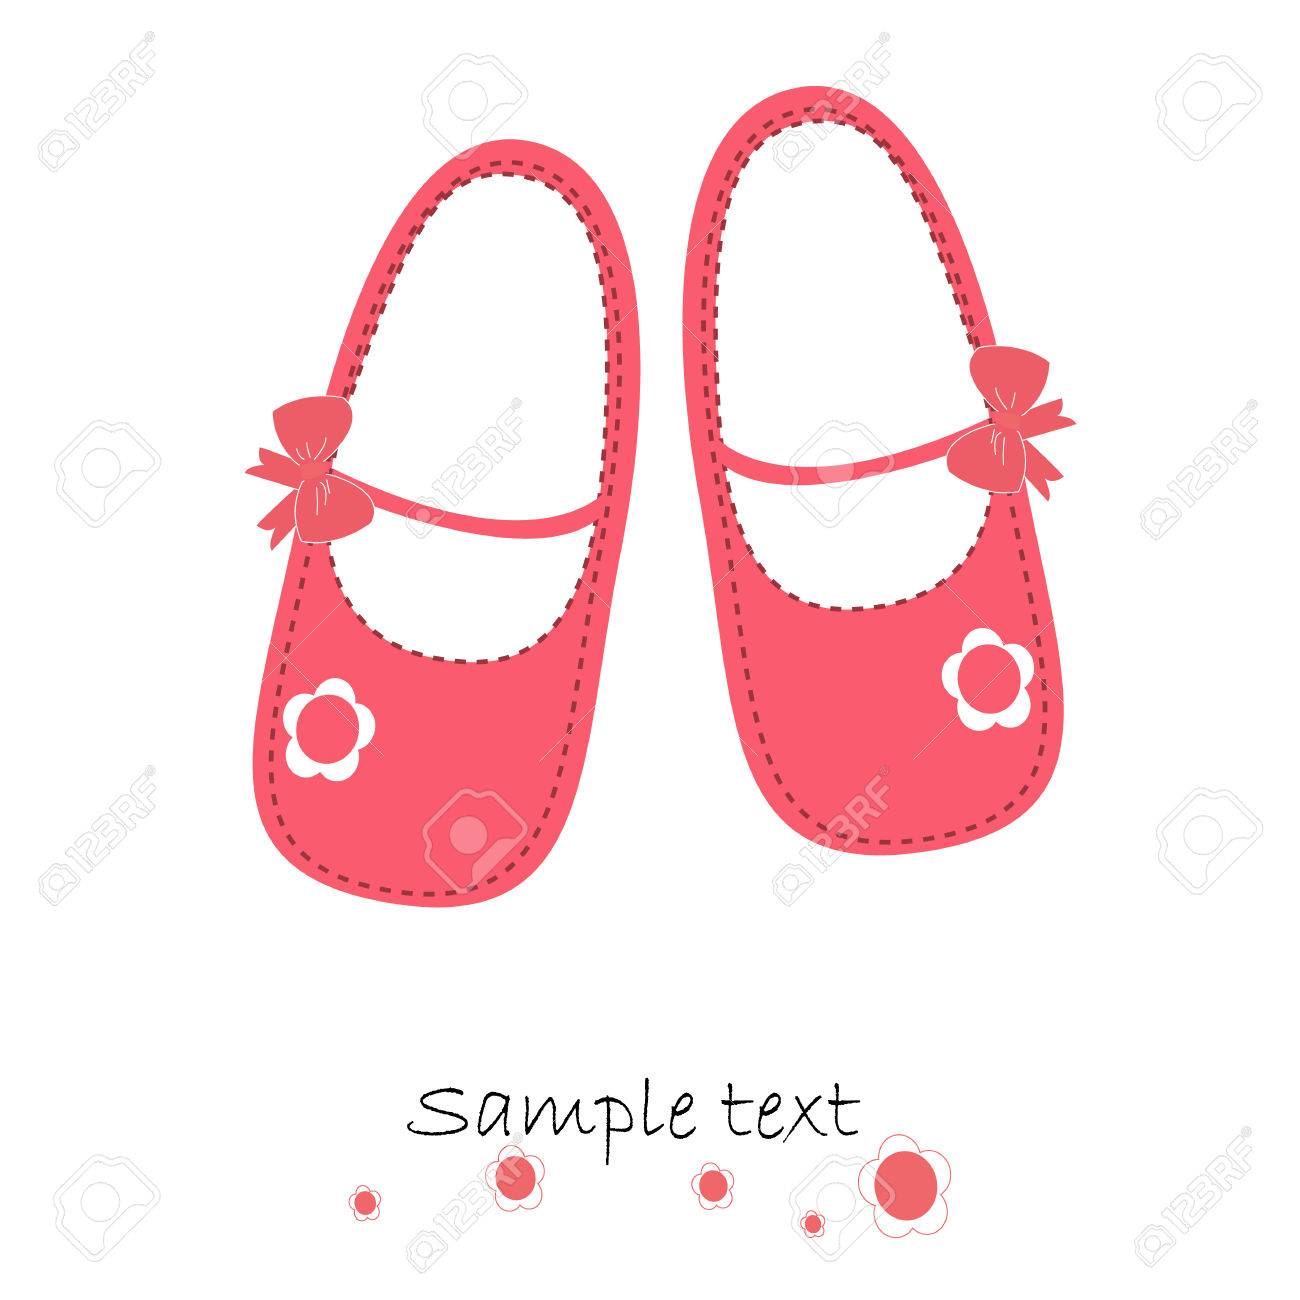 Pink Baby Shoes Newborn Greeting Card Vector Royalty Free Cliparts Vectors And Stock Illustration Image 33145539